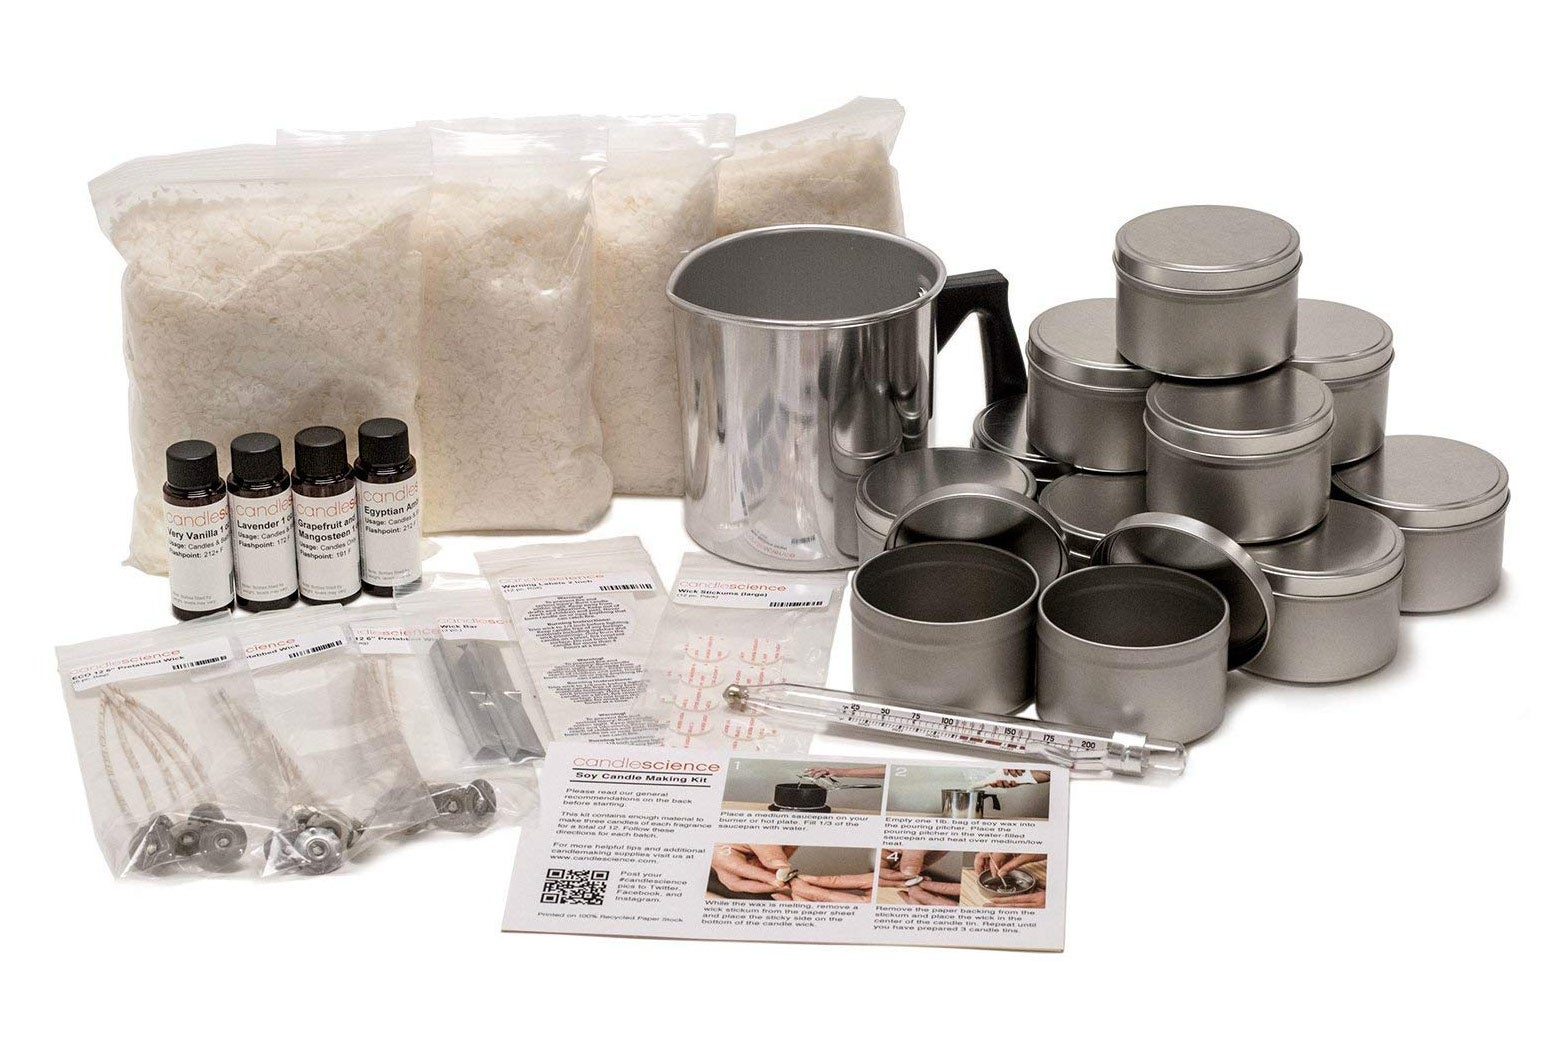 CandleScience Soy Candle Making Starter Kit.